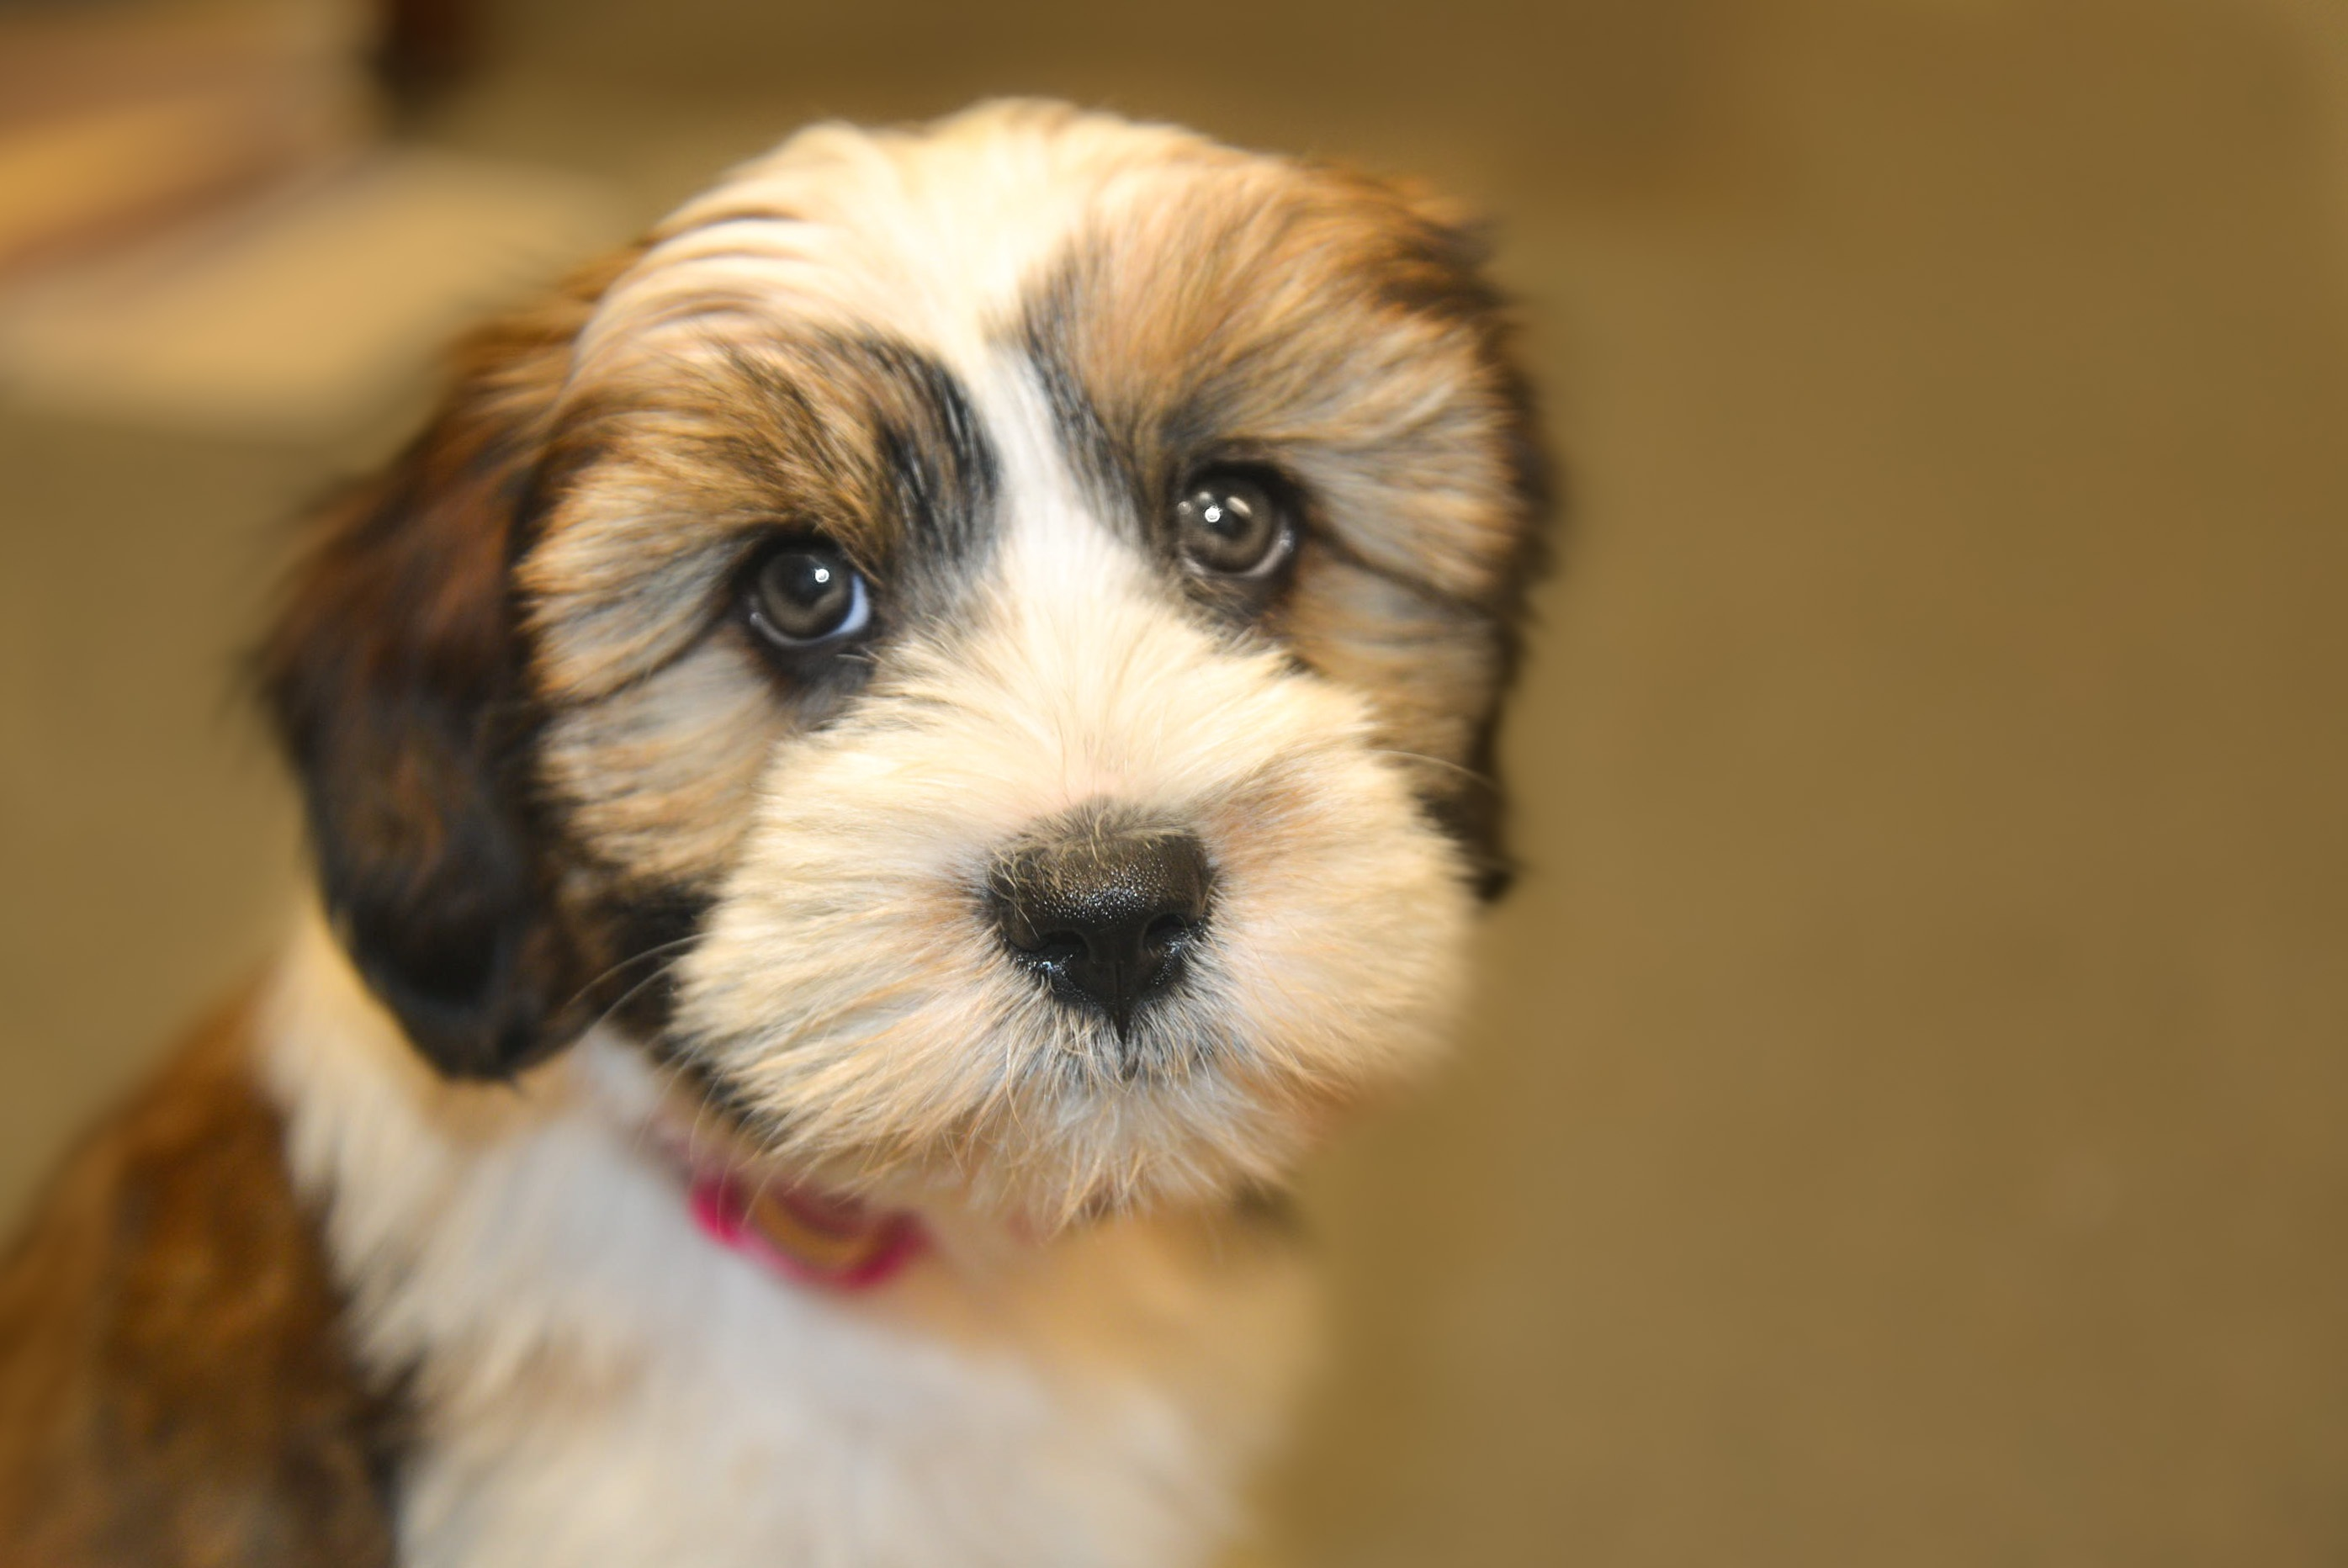 Cute Animal Wallpapers Free Download Close Up Photo Of Shih Tzu Puppy 183 Free Stock Photo